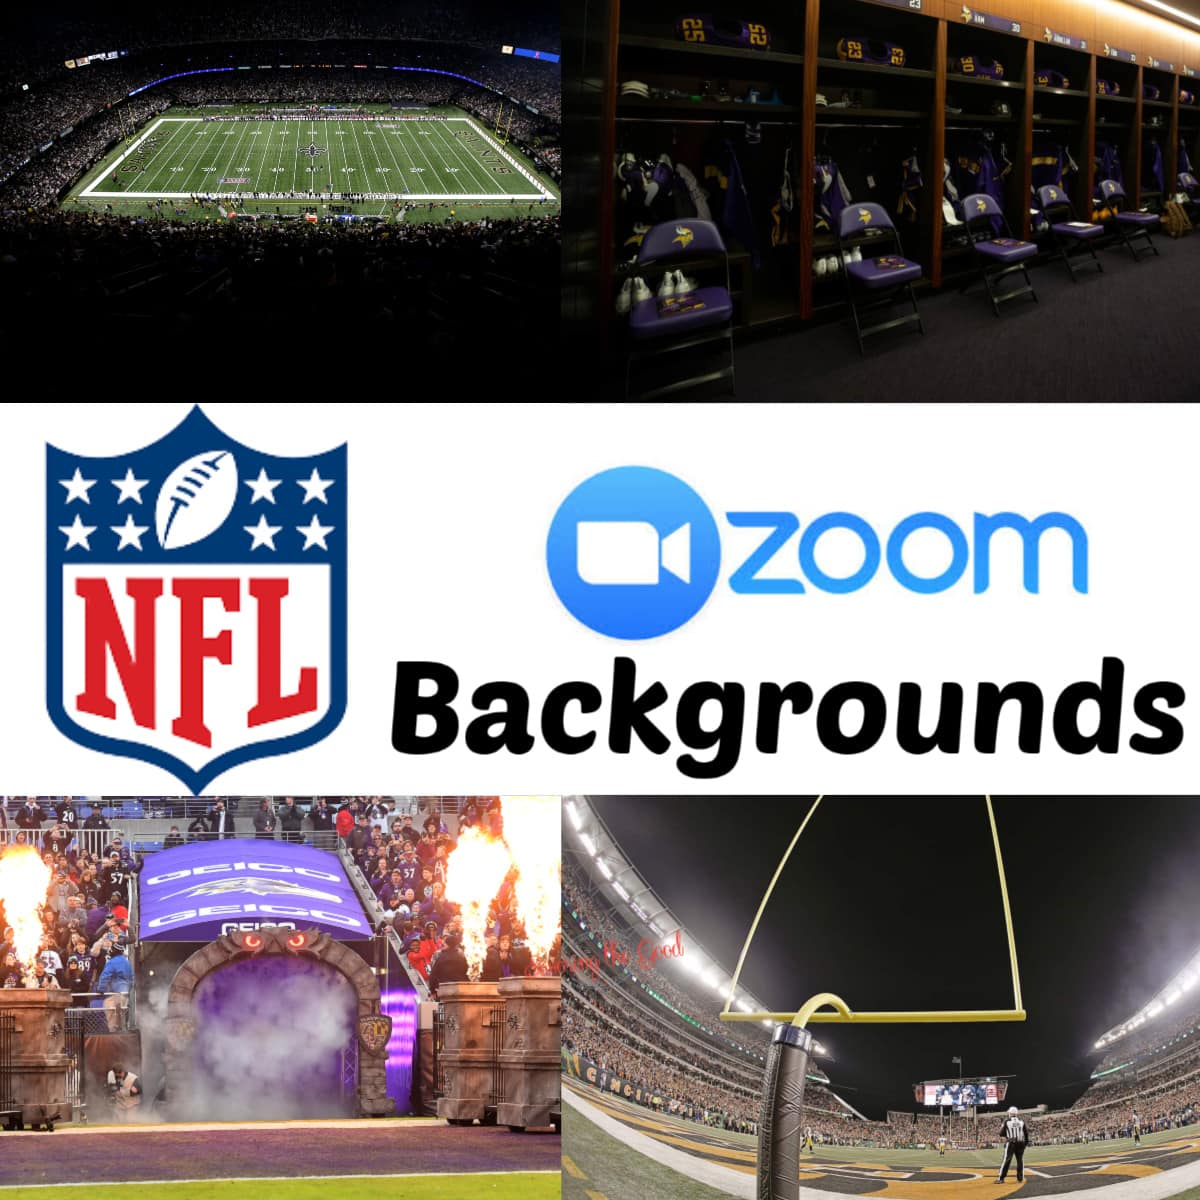 NFL Backgrounds for zoom